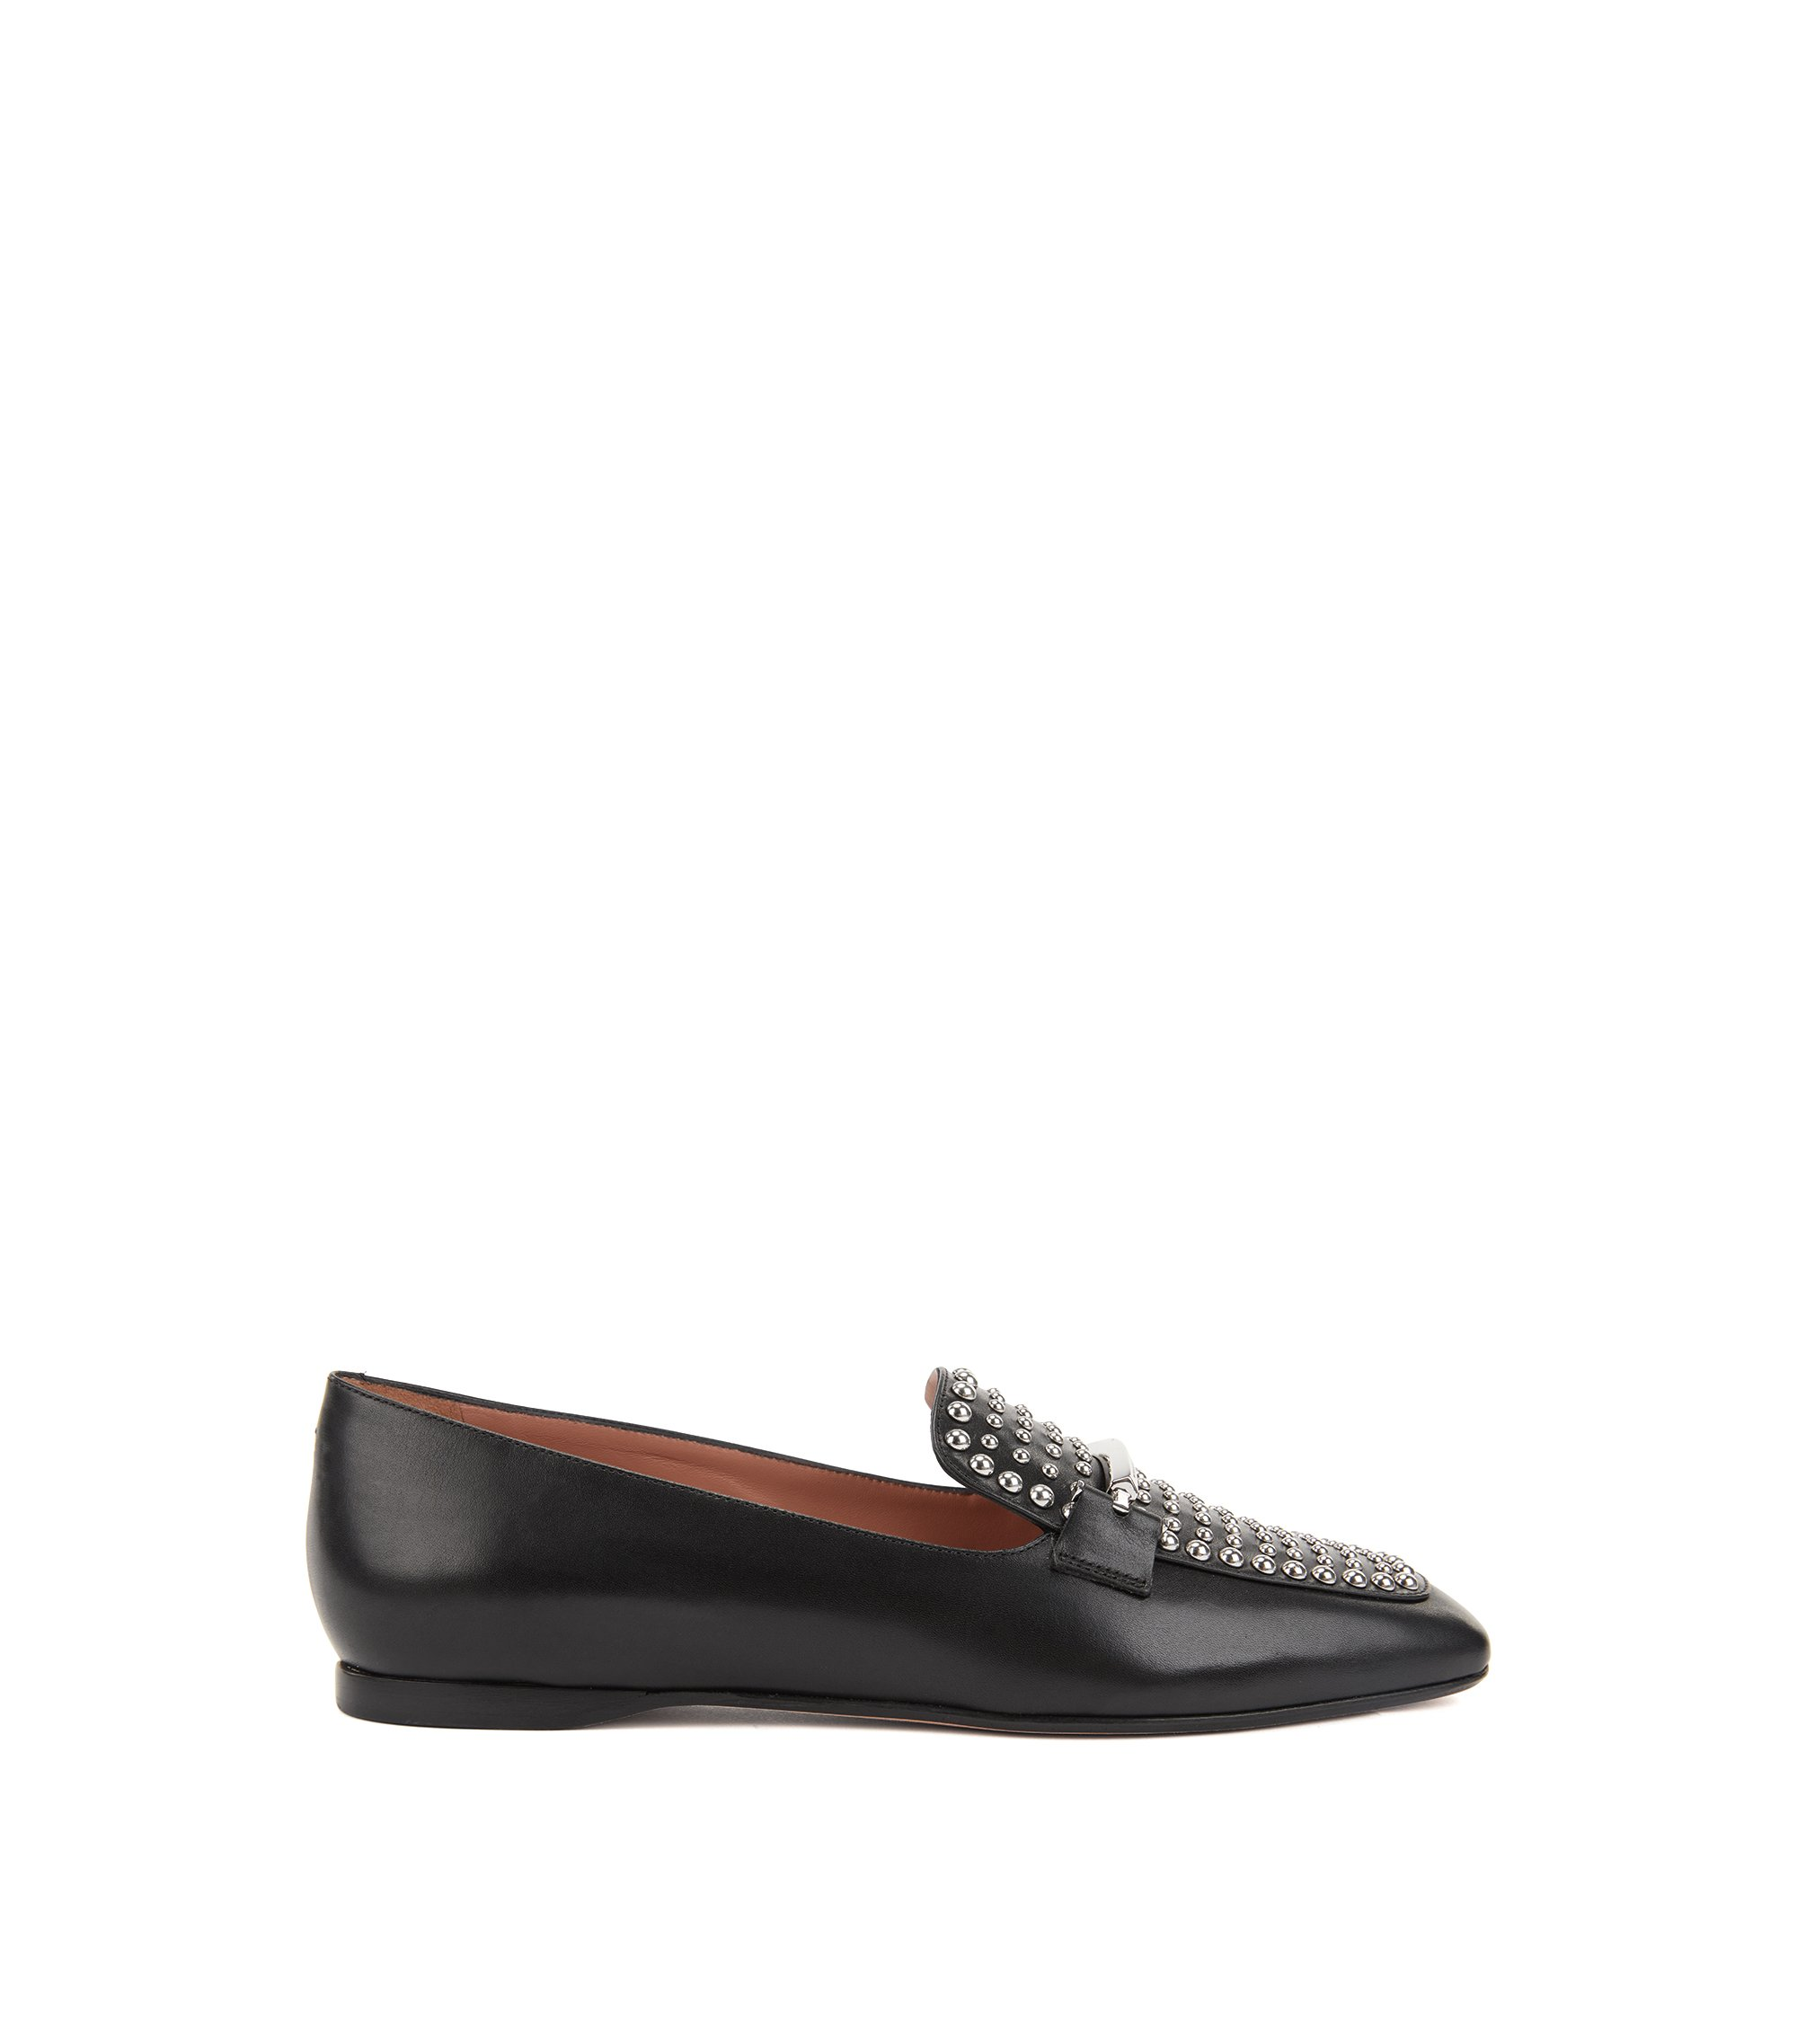 Italian calf-leather loafers with stud detailing, Black